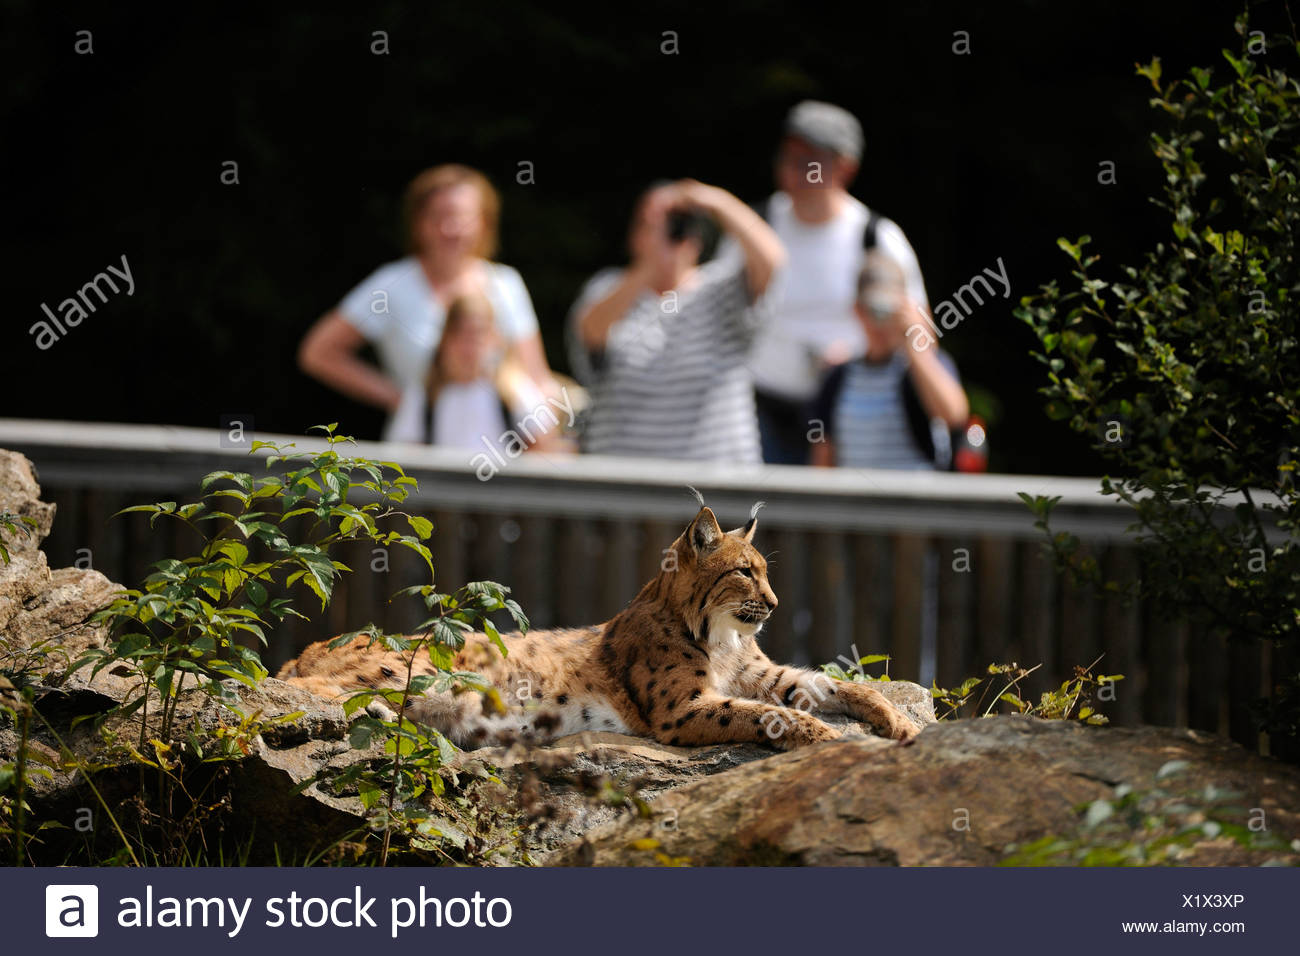 Lynx (Lynx lynx) lying on a rock being observed and photographed by visitors, Bavarian Forest National Park, Bavaria - Stock Image